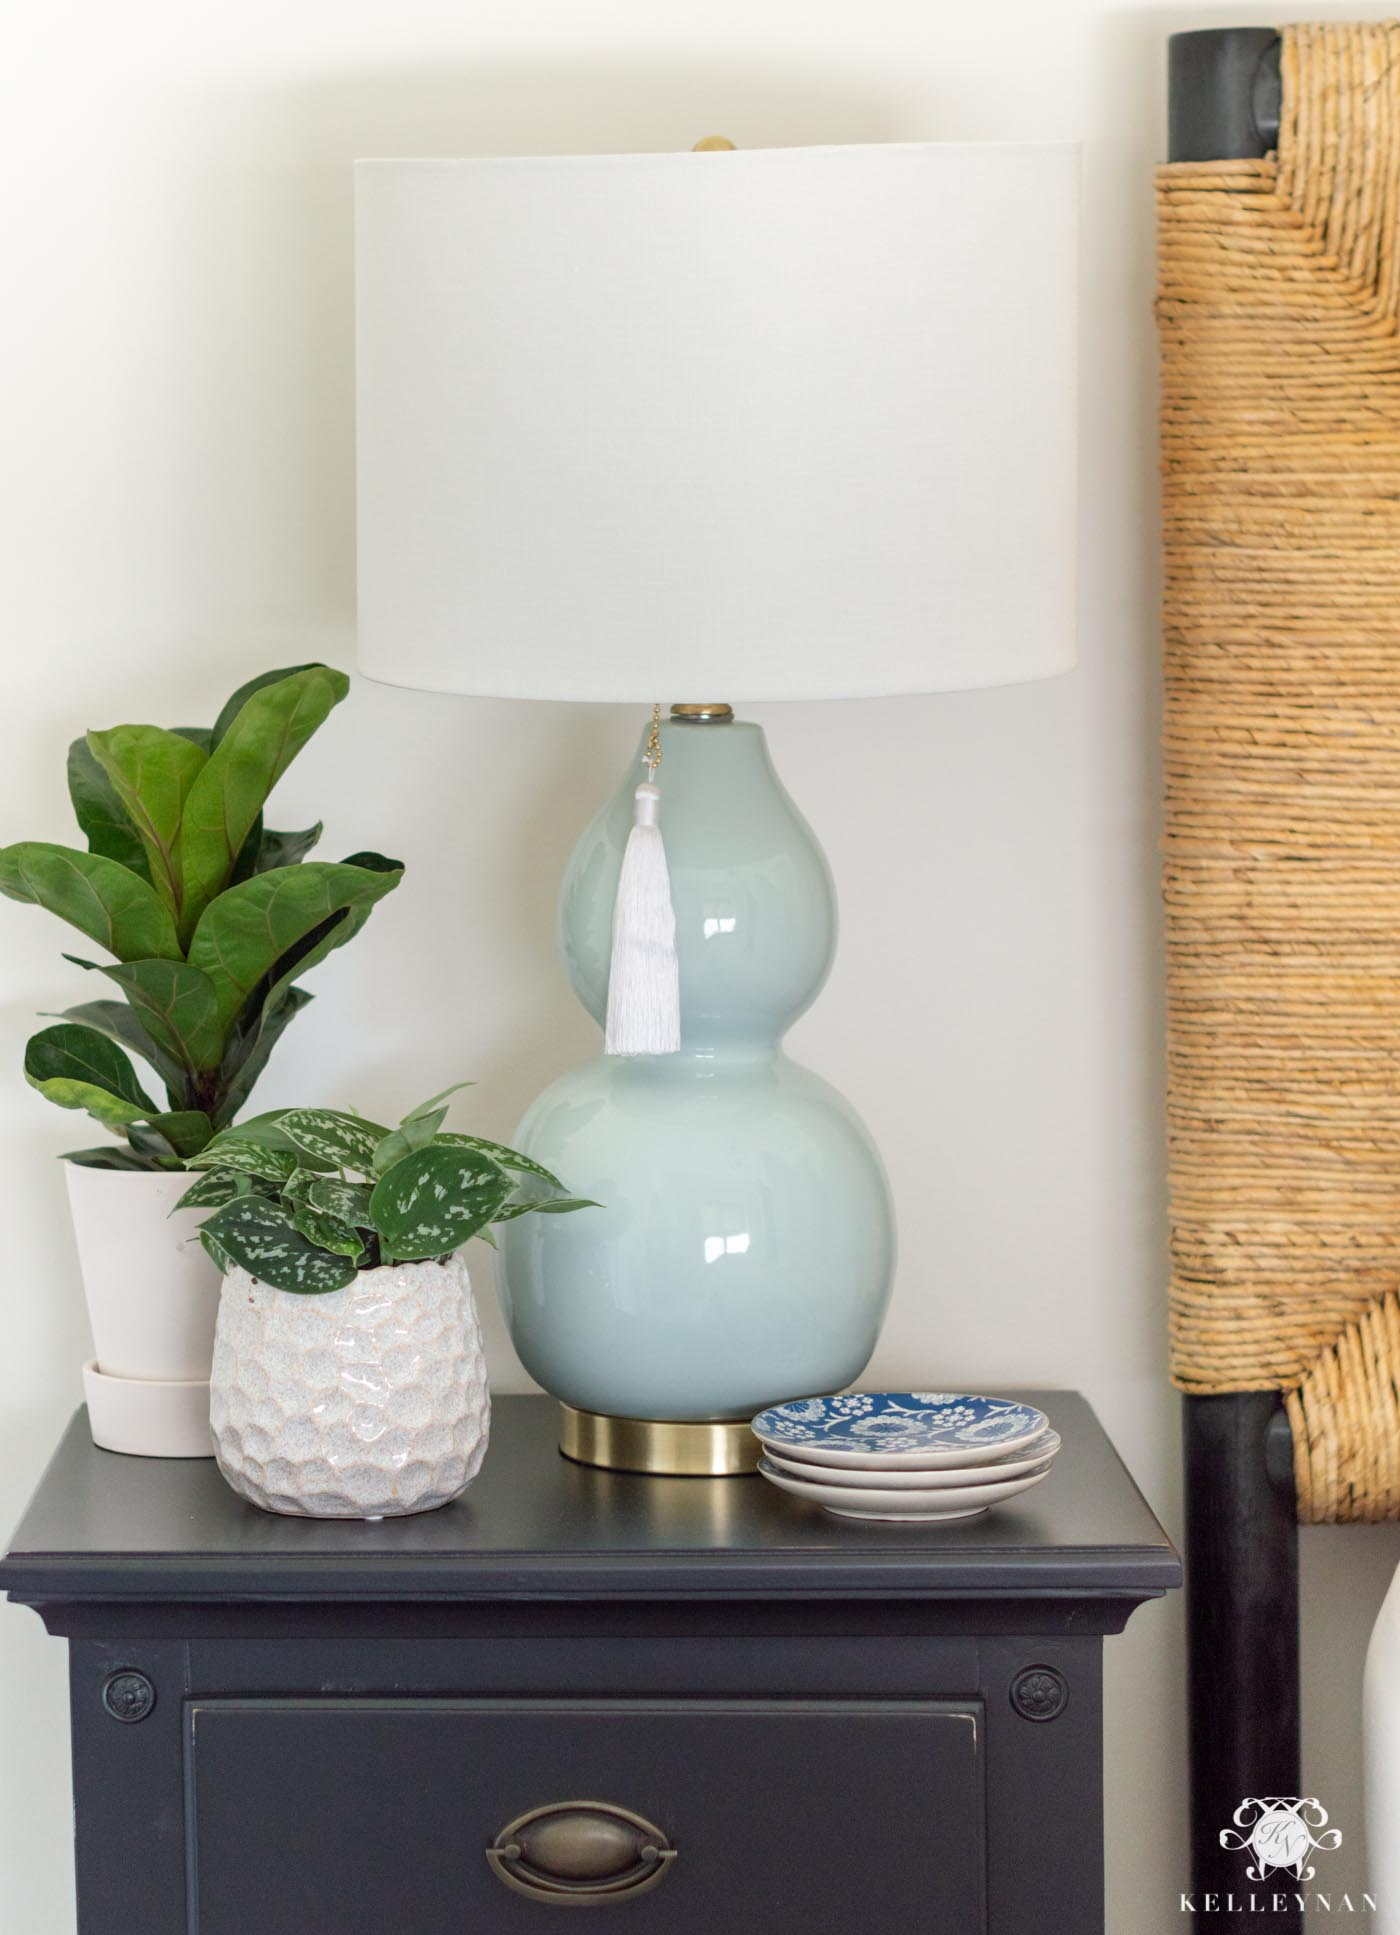 Nightstand Decor with Plants